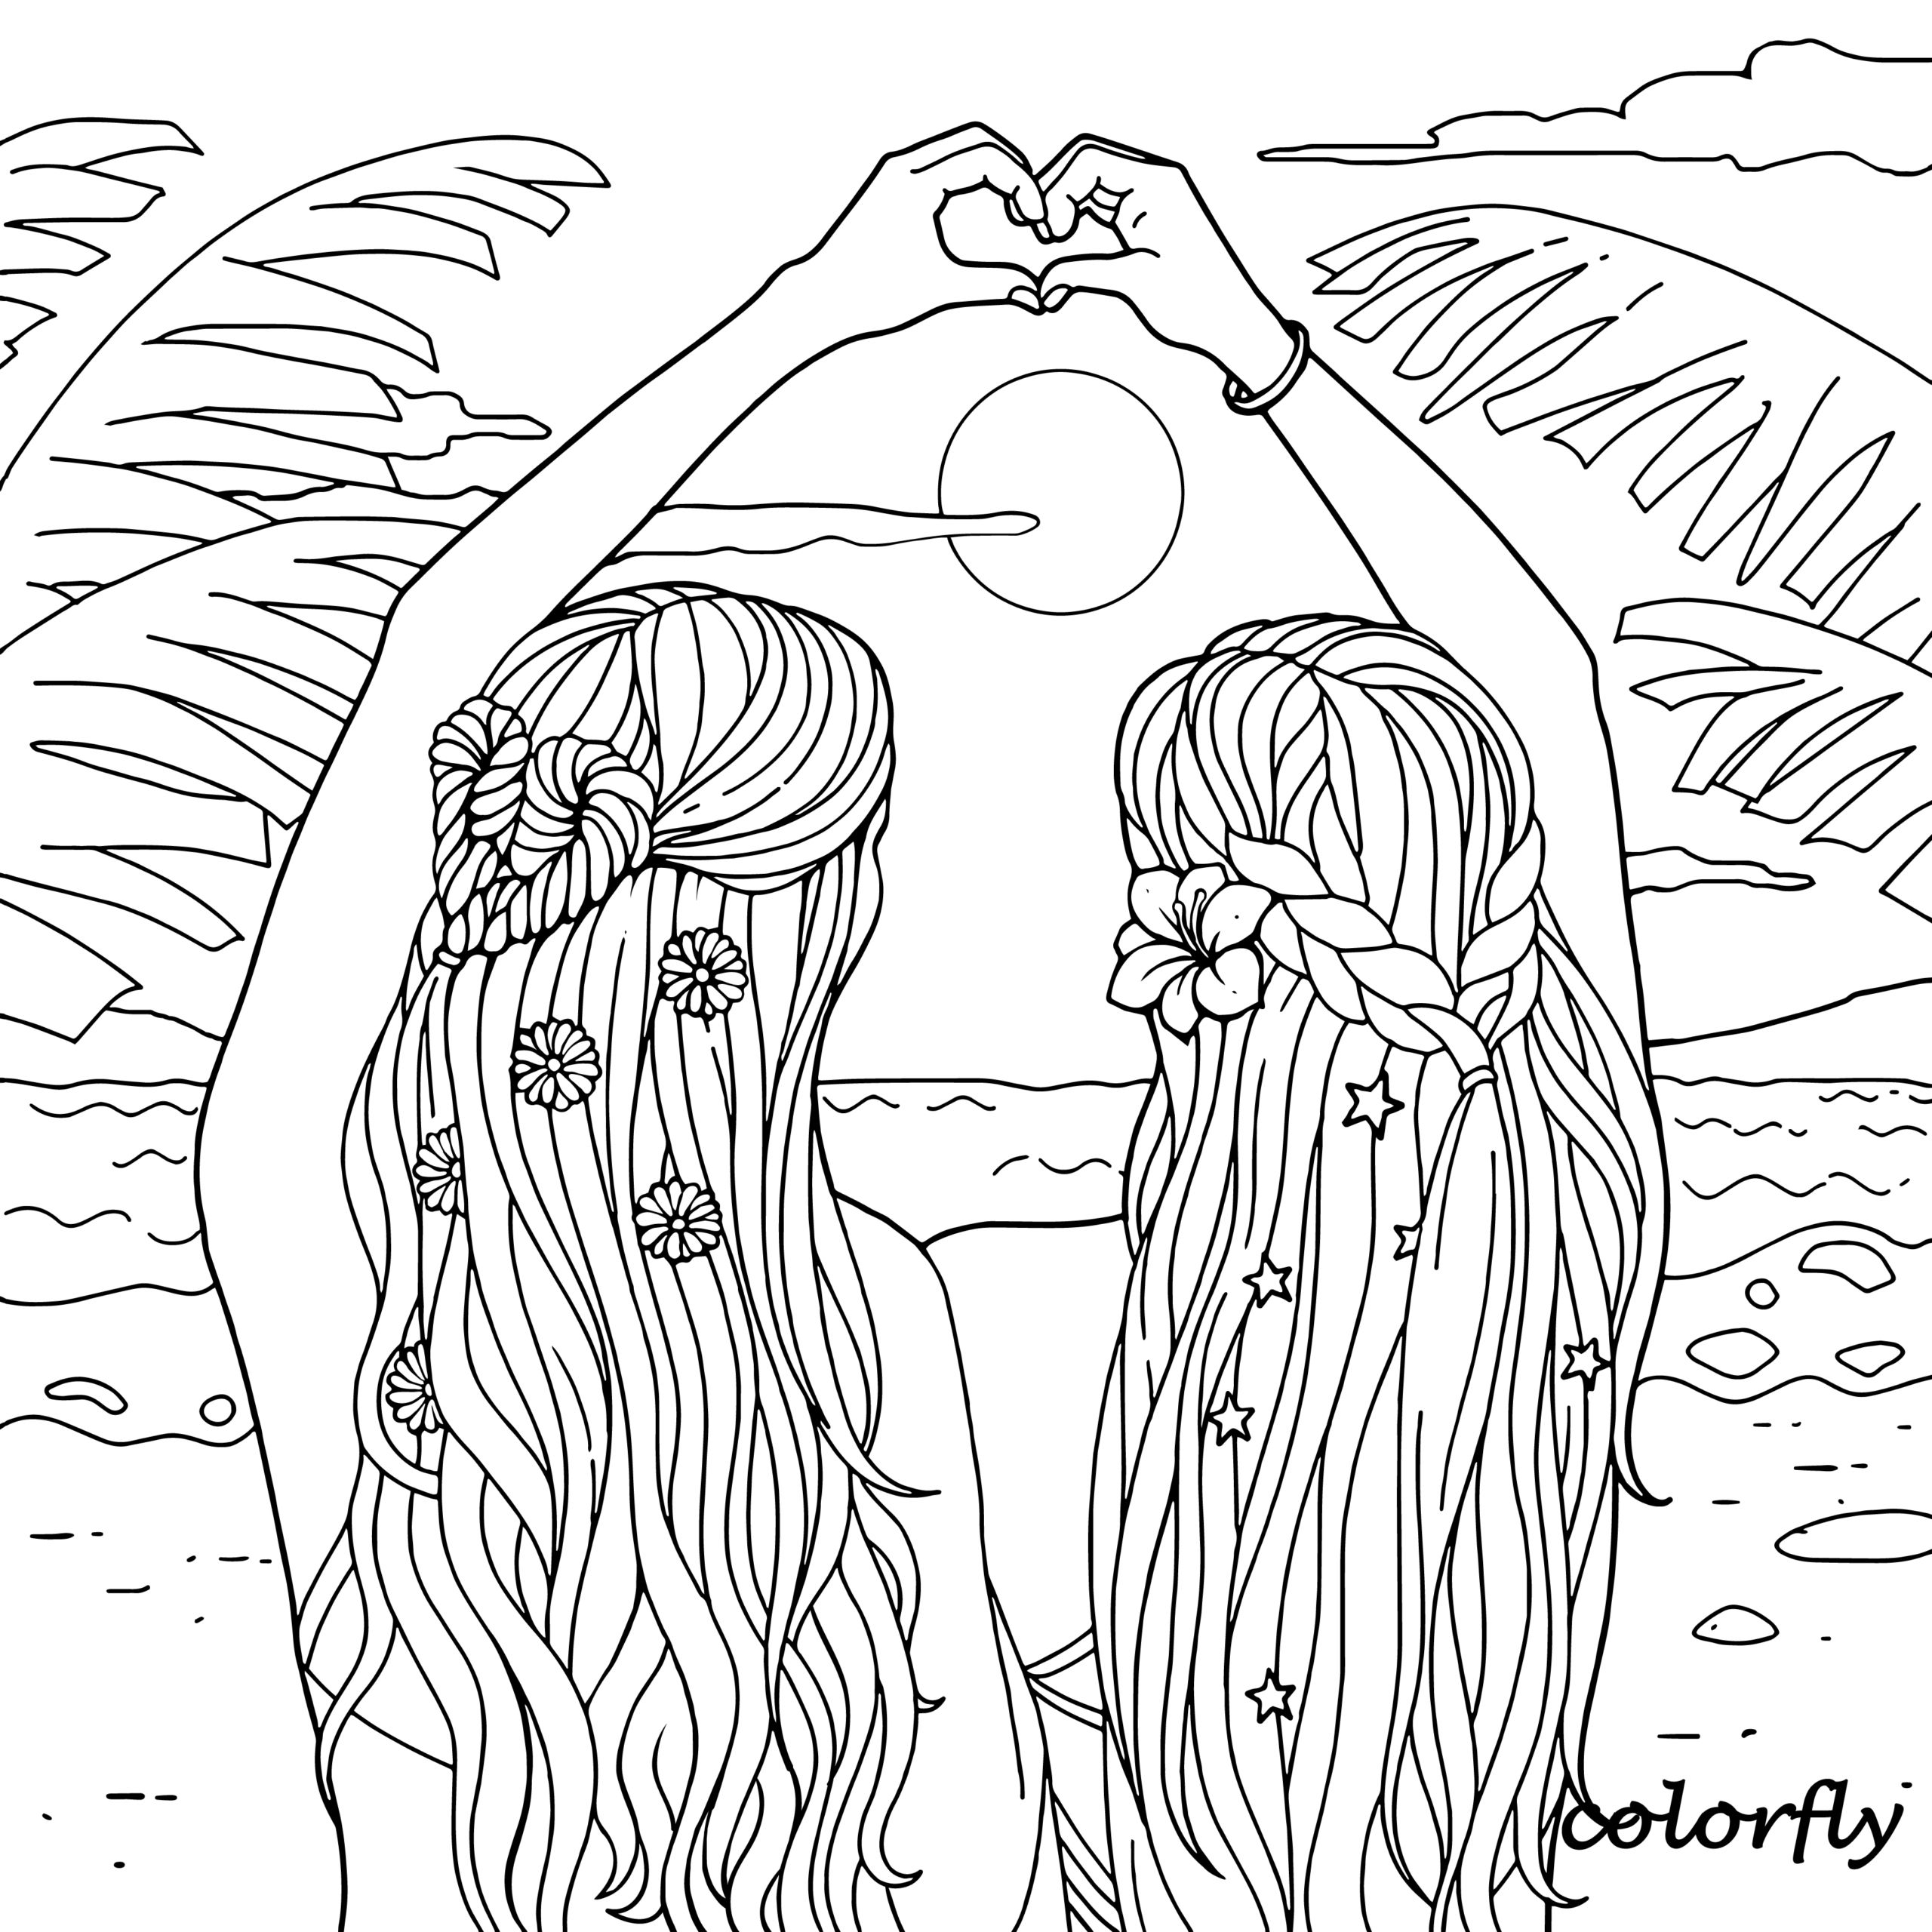 Best Friend Coloring Pages For Kids Fairy Coloring Pages Cute Coloring Pages Summer Coloring Pages